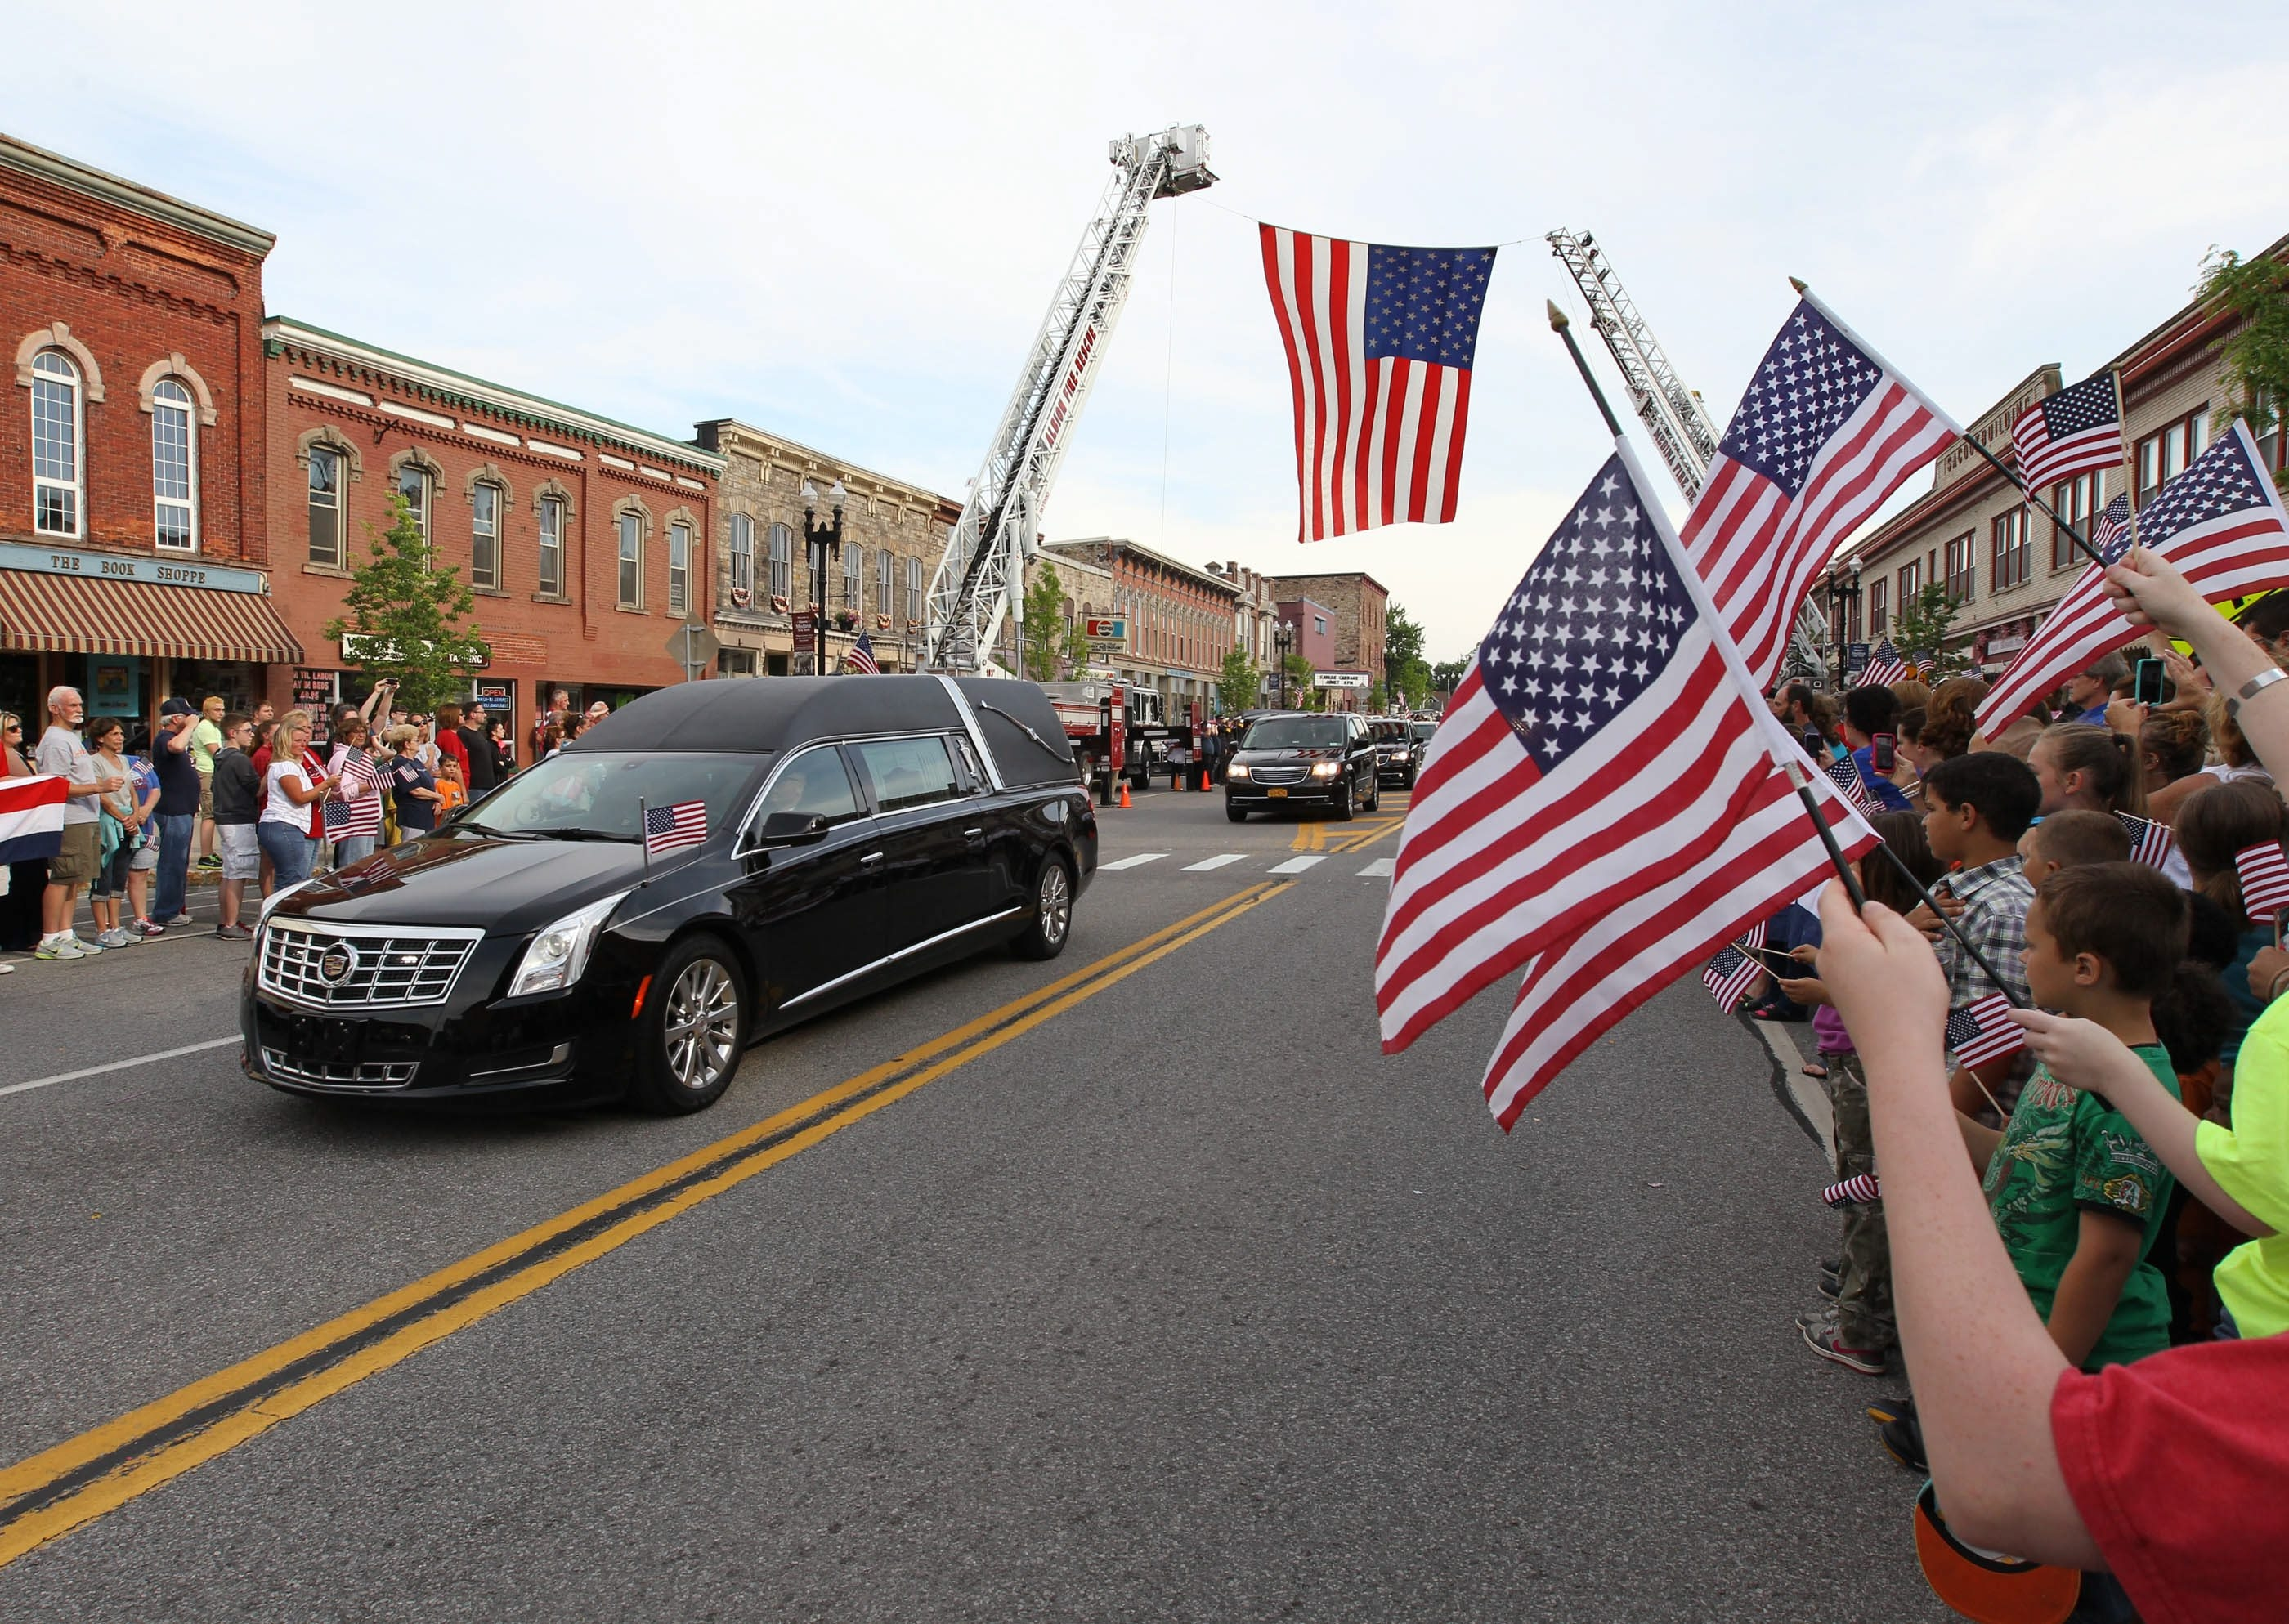 James P. McCoy/Buffalo News   The funeral procession for Army Sgt. Shaina Schmigel travels through Medina as residents line the streets to pay their respects.